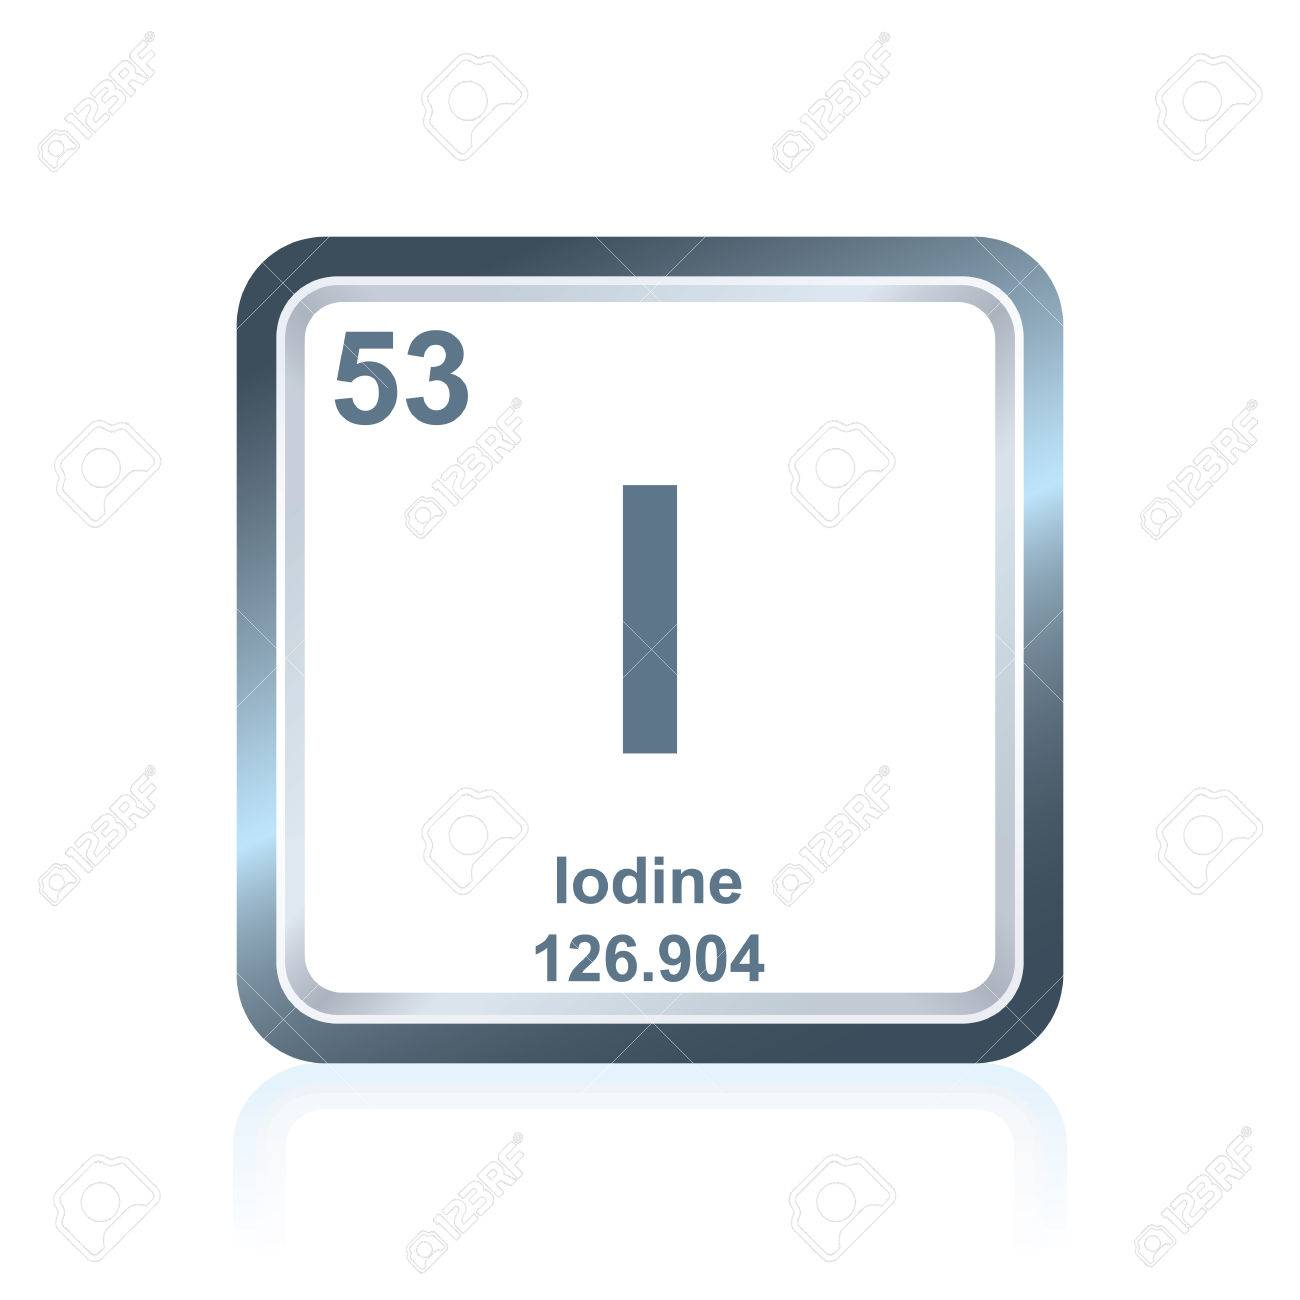 Symbol of chemical element iodine as seen on the periodic table symbol of chemical element iodine as seen on the periodic table of the elements including gamestrikefo Gallery